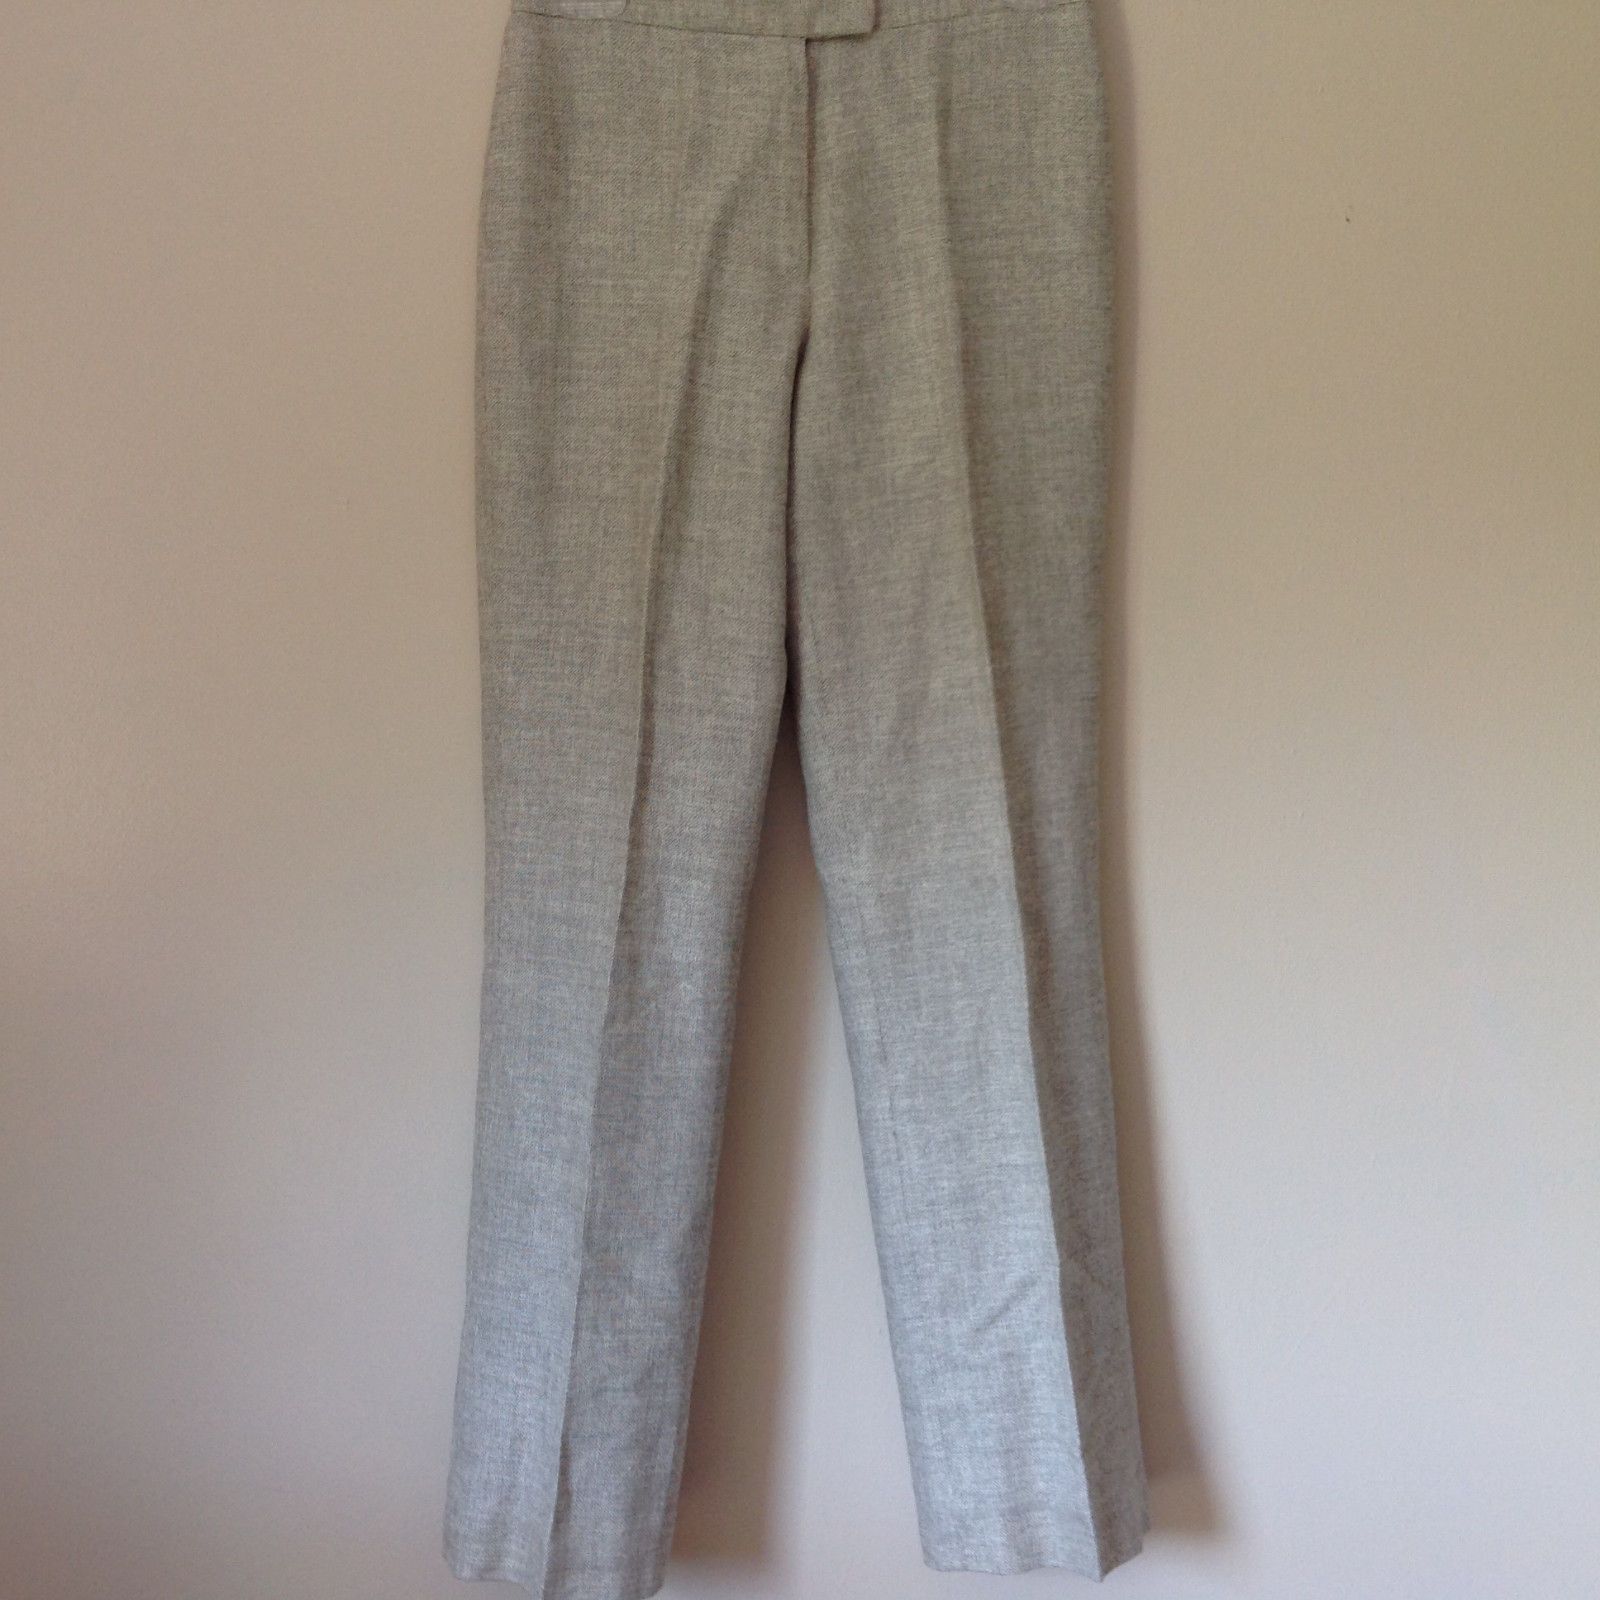 Primary image for Gorgeous Dress Pants by Anne Klein Petite Light Colors Imported Fabric Size 4